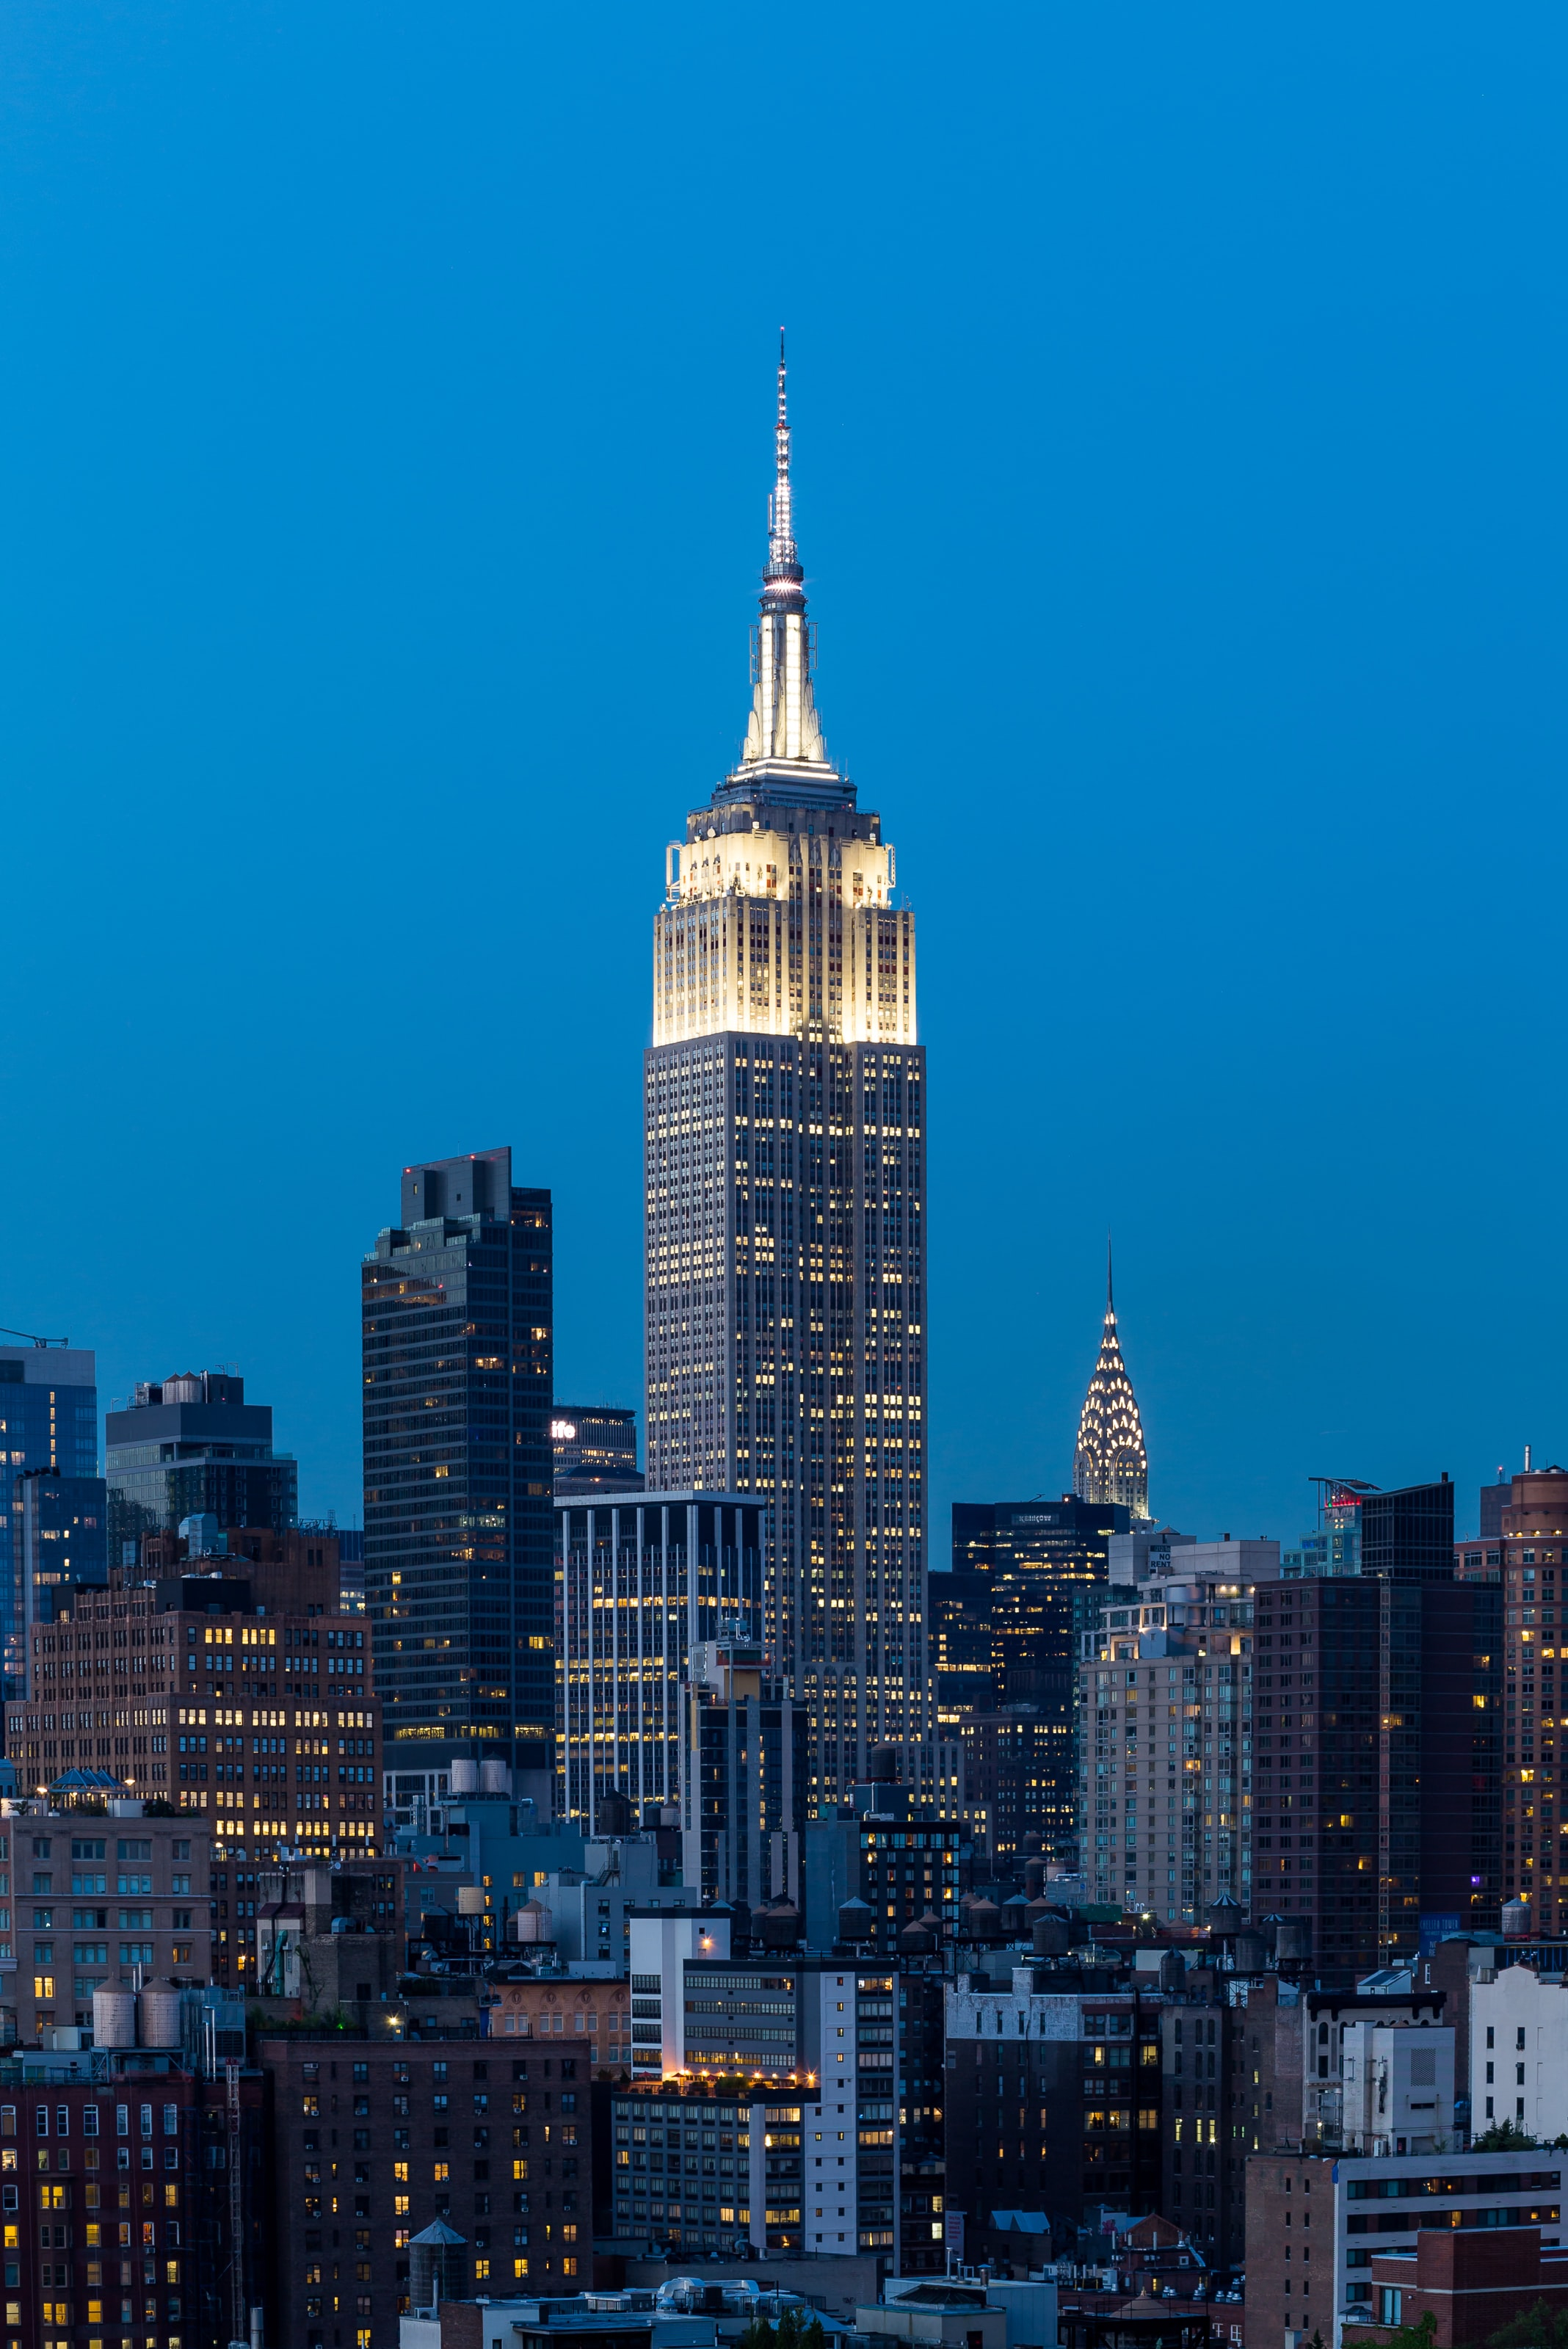 Empire State Building and skyscrapers with lights at night in New York City